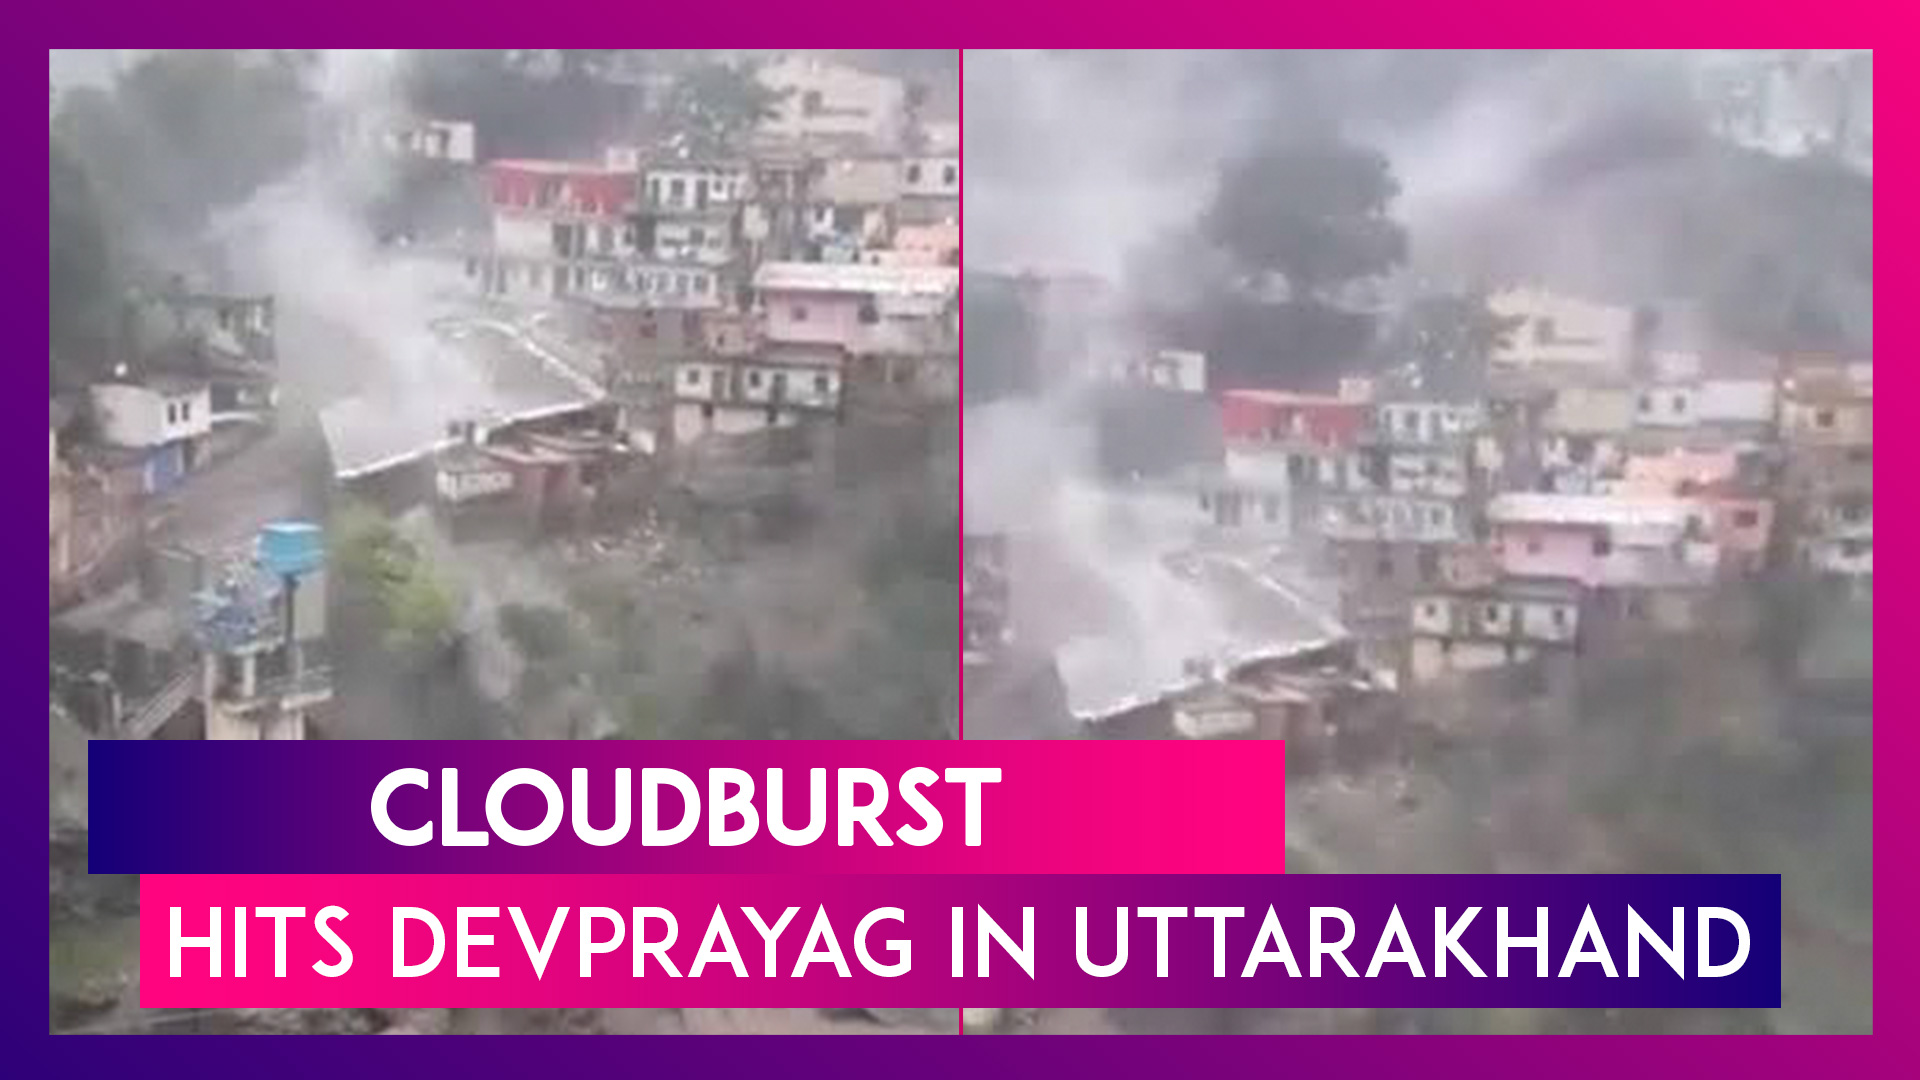 Cloudburst Hits Devprayag In Uttarakhand, Chief Minister Tirath Singh Rawat Says No One Injured